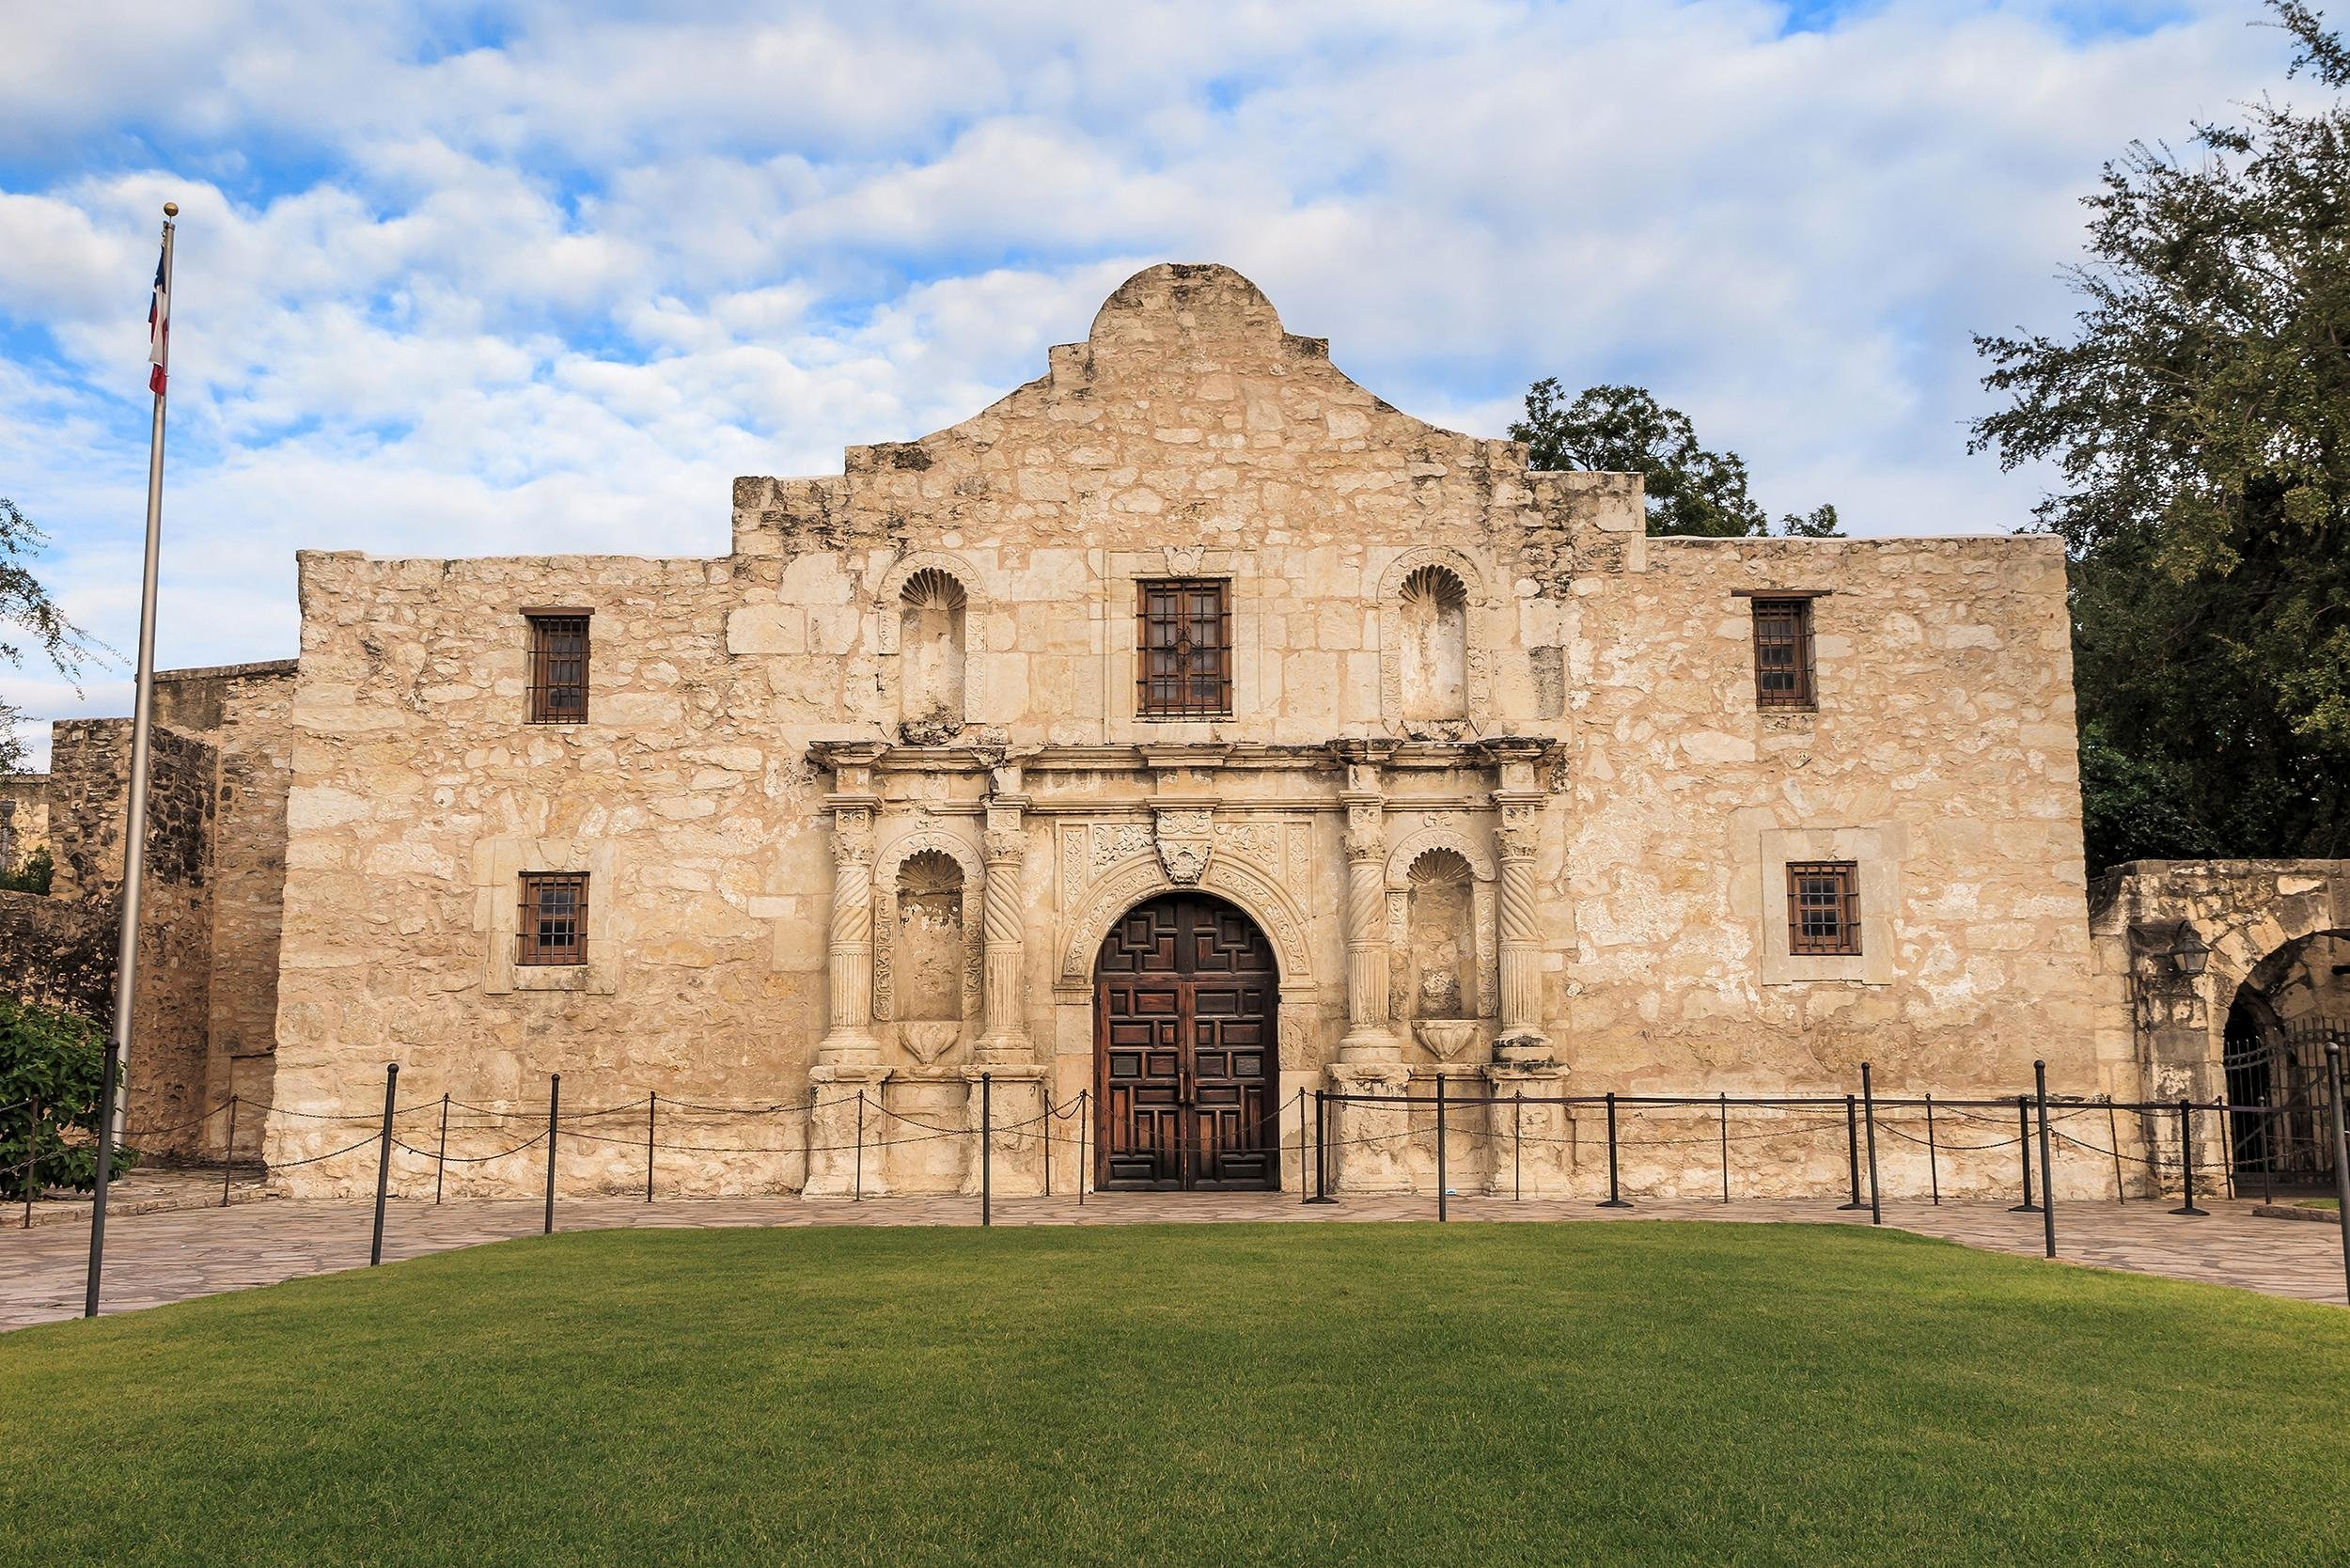 "Slide 44 of 52: Most known as a site which fueled a thirst for violent revenge, the phrase ""remember the Alamo"" served as a rallying cry for soldiers of the Texian Army in their battle against Mexico during the Texas Revolution. After the slaughter of Texas soldiers at San Antonio's Alamo Mission, the Texian Army would go on to defeat the Mexican Army at the Battle of San Jacinto to establish the Republic of Texas."